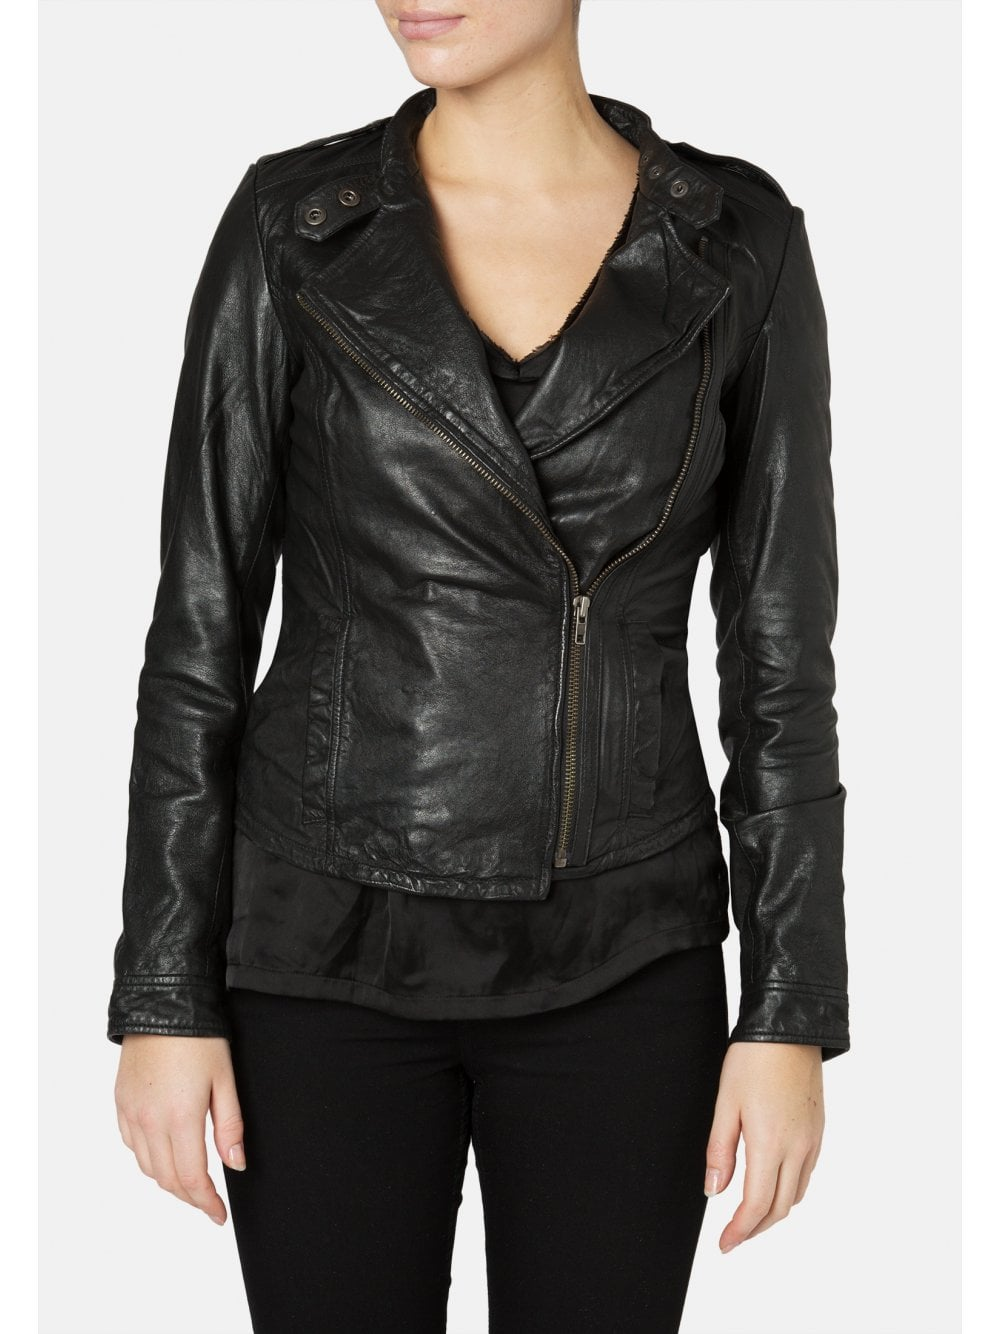 e5197dd89 Tredoux Black Fitted Leather Biker Jacket